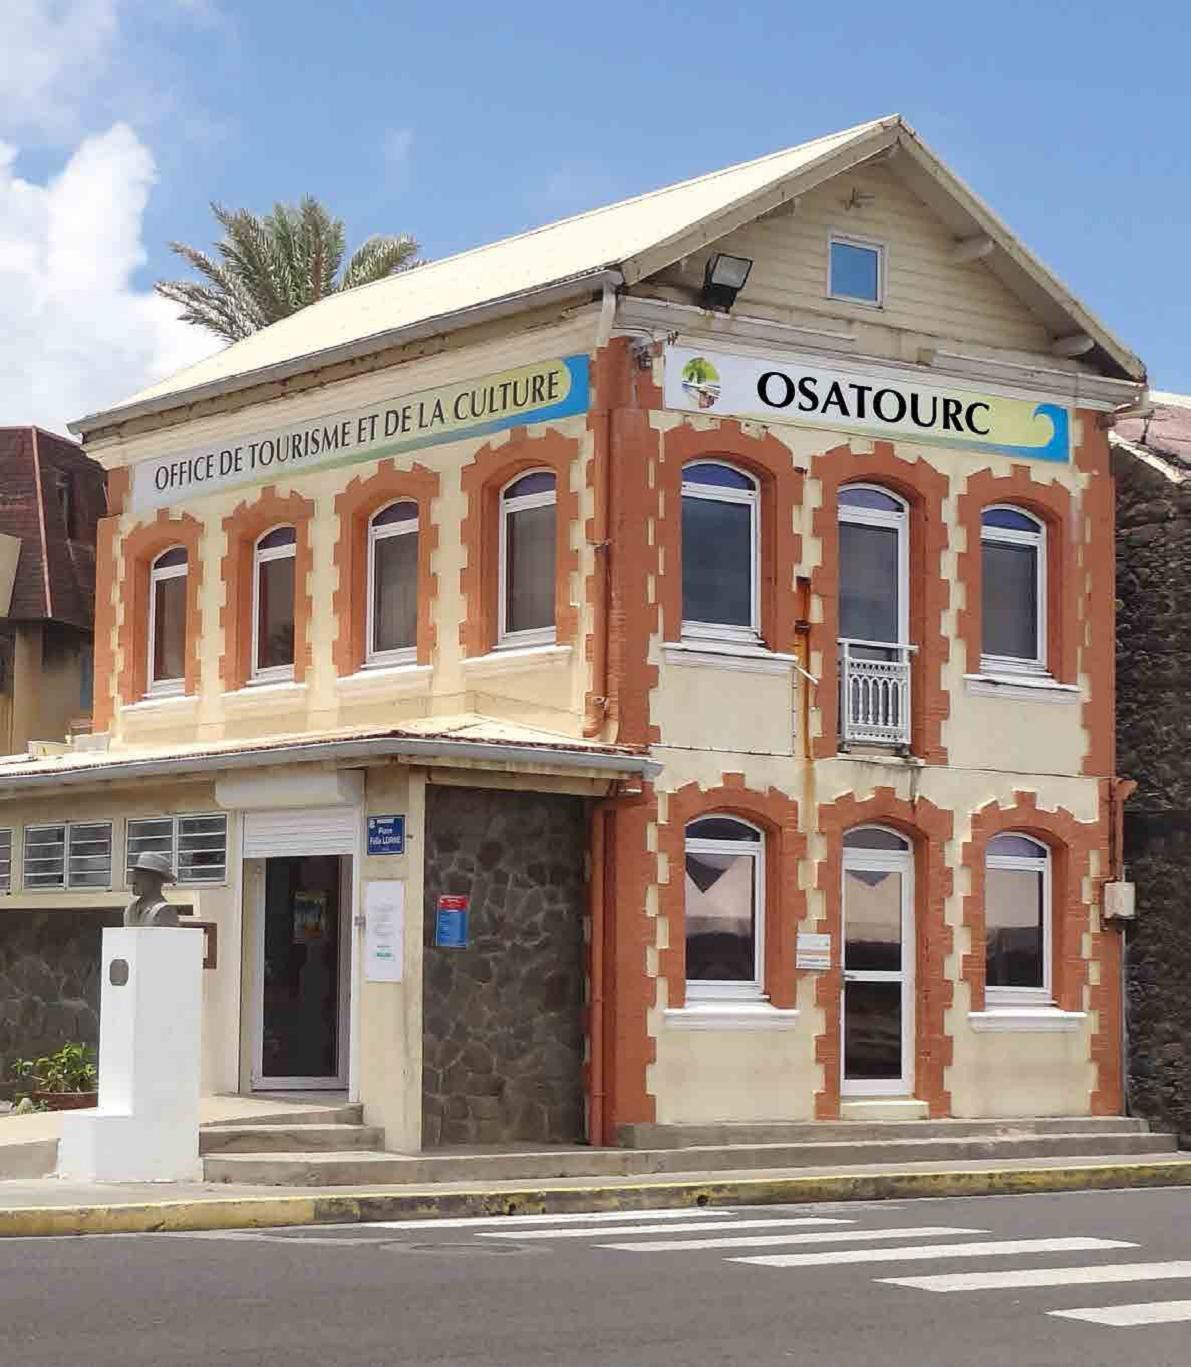 Sainte marie martinique office du tourisme - Office du tourisme oloron sainte marie ...